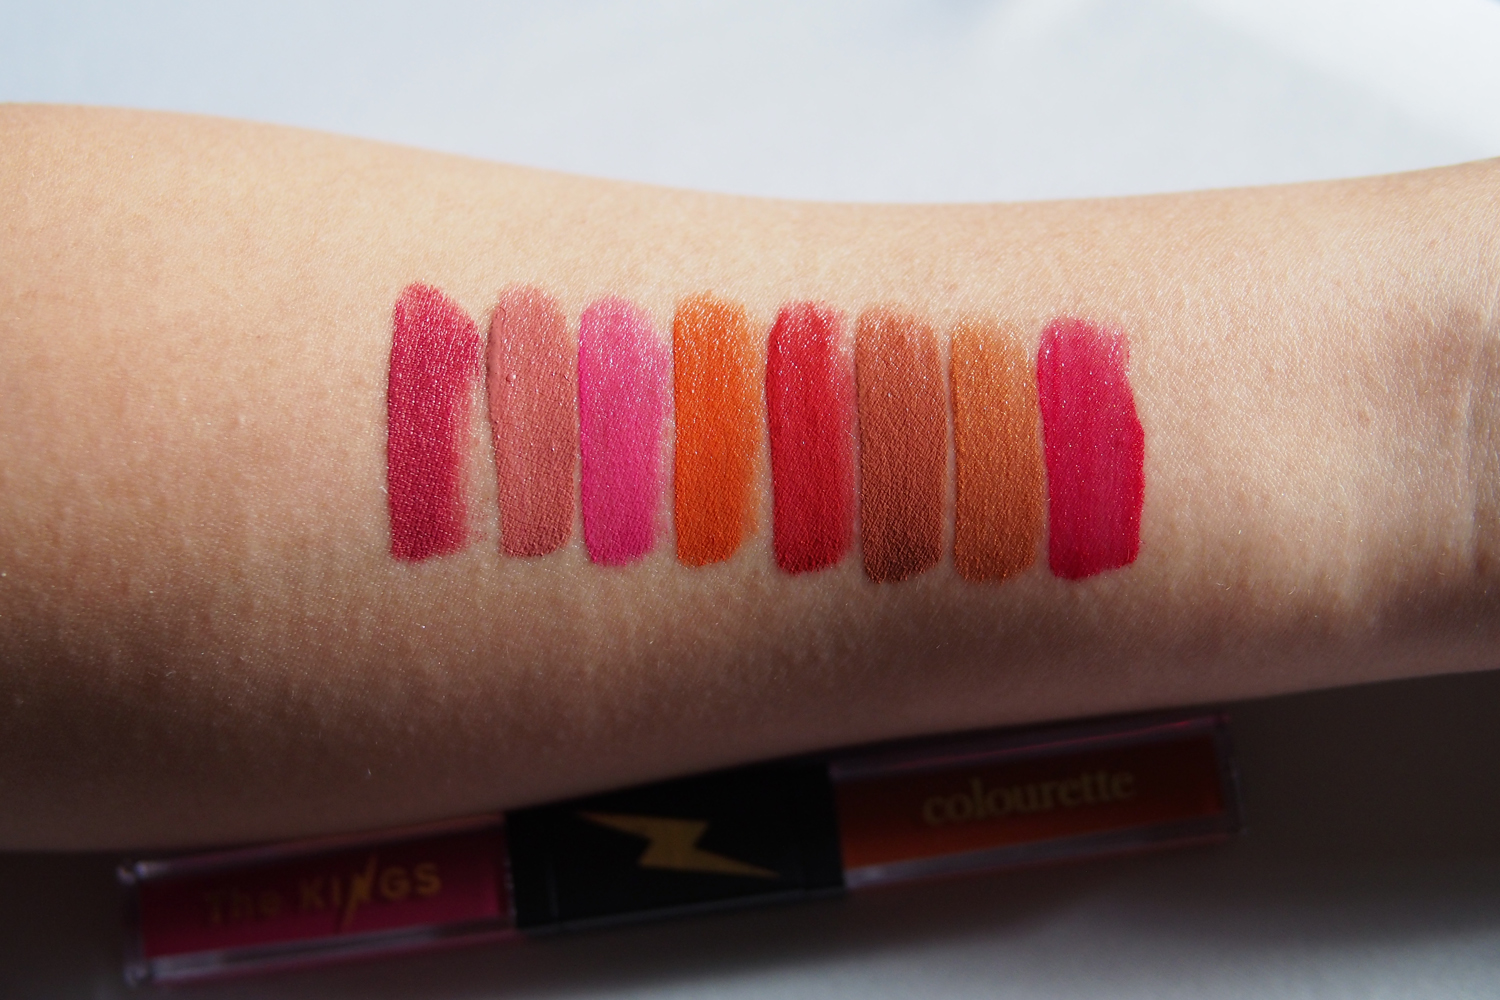 Swatches, from left:  Dualitint 1 in Love and Light, Dualitint 2 in Resting Beach Face (RBF) and No Furs Given (NFG), Dualitint 3 in Supercharged and Racewife, and Dualitint 4 in the metallics Happy Hour and Morning After